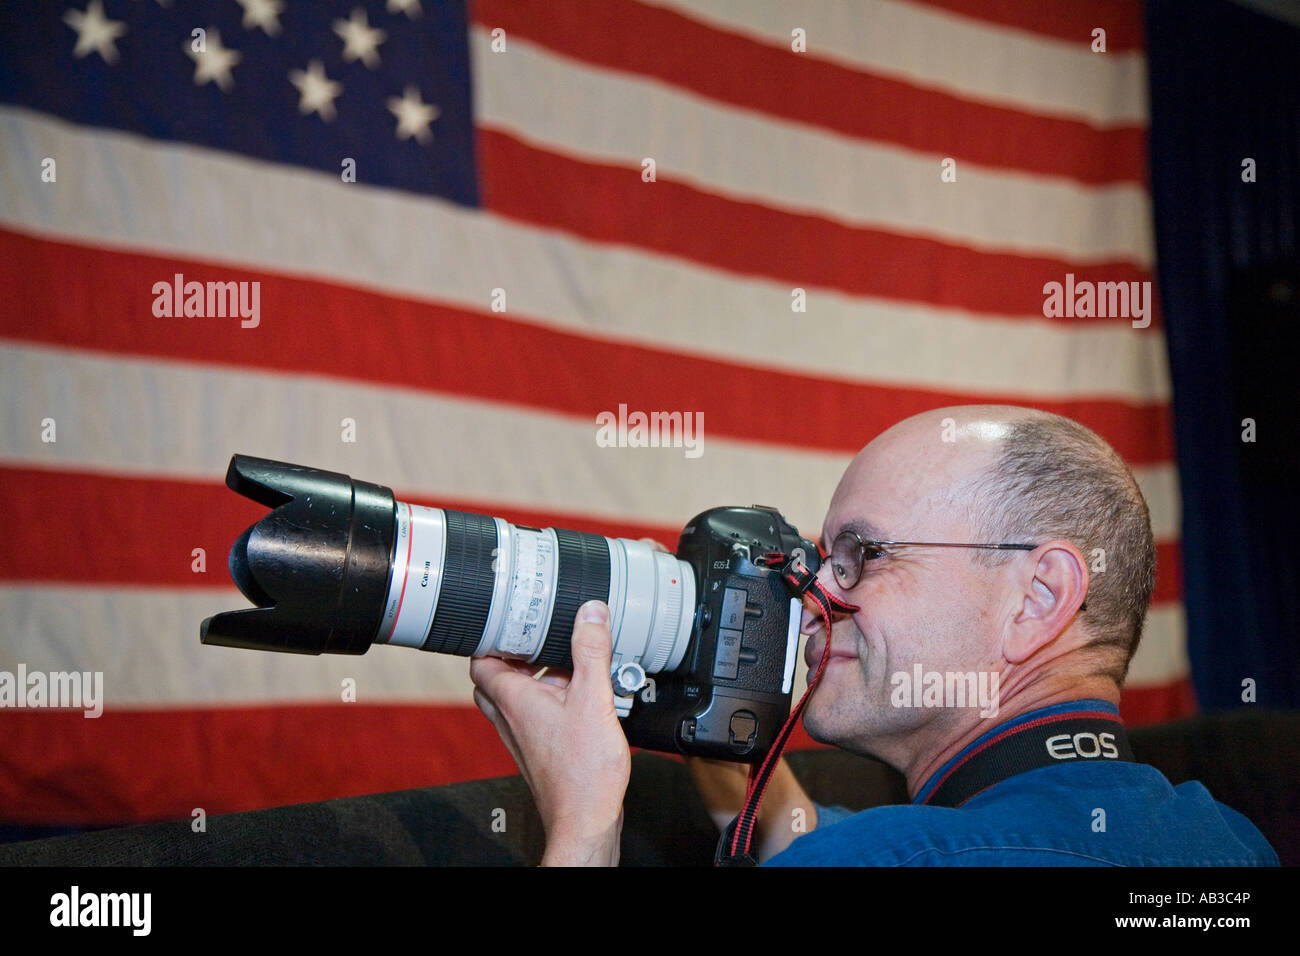 News Photographer - Stock Image